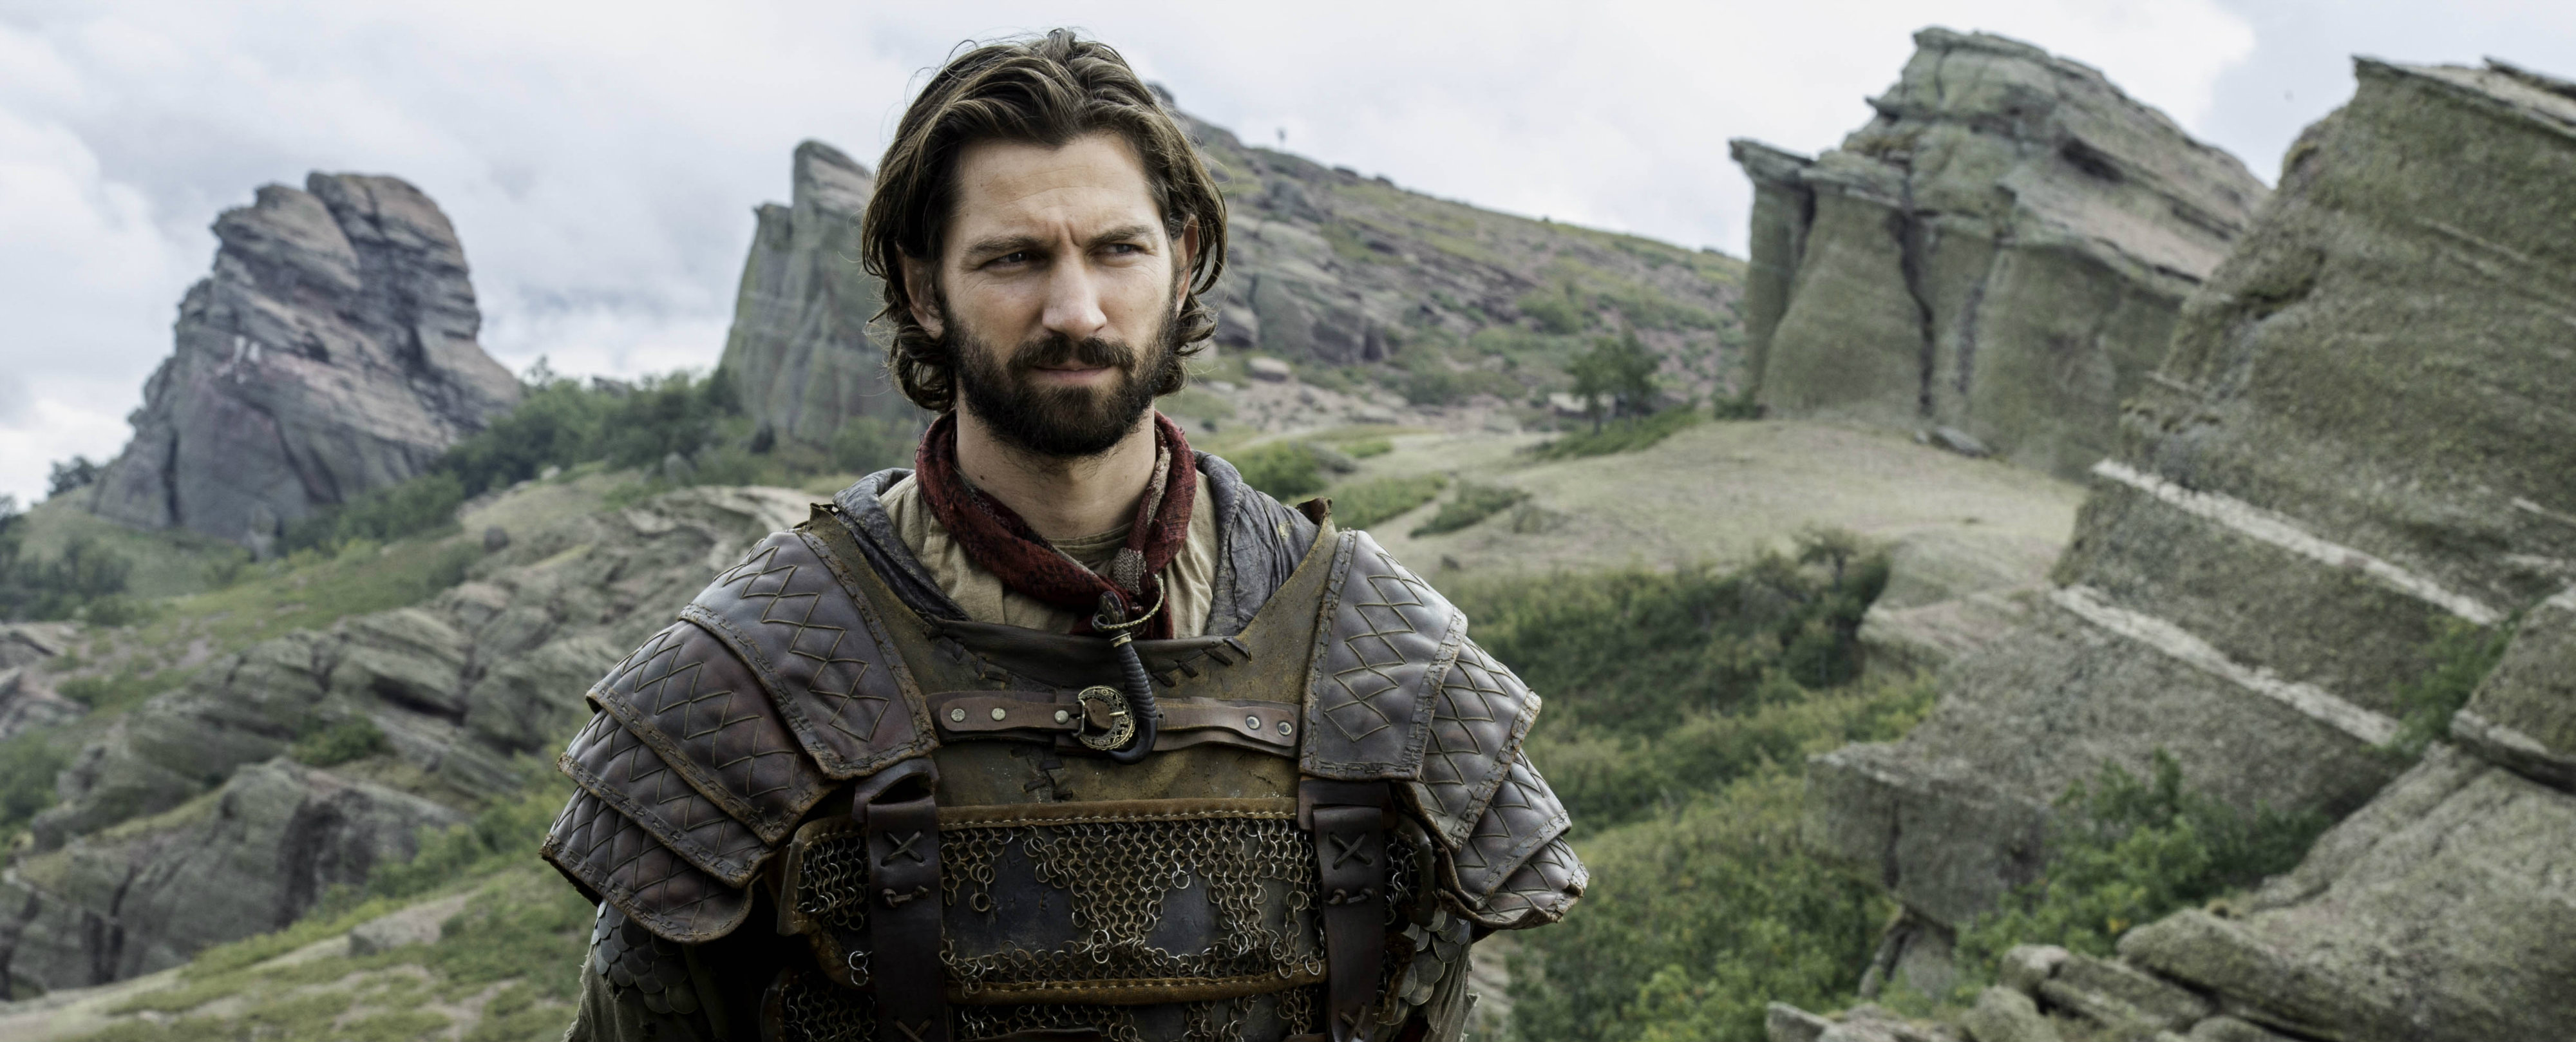 game of thrones saison 7 daario de retour brain damaged. Black Bedroom Furniture Sets. Home Design Ideas